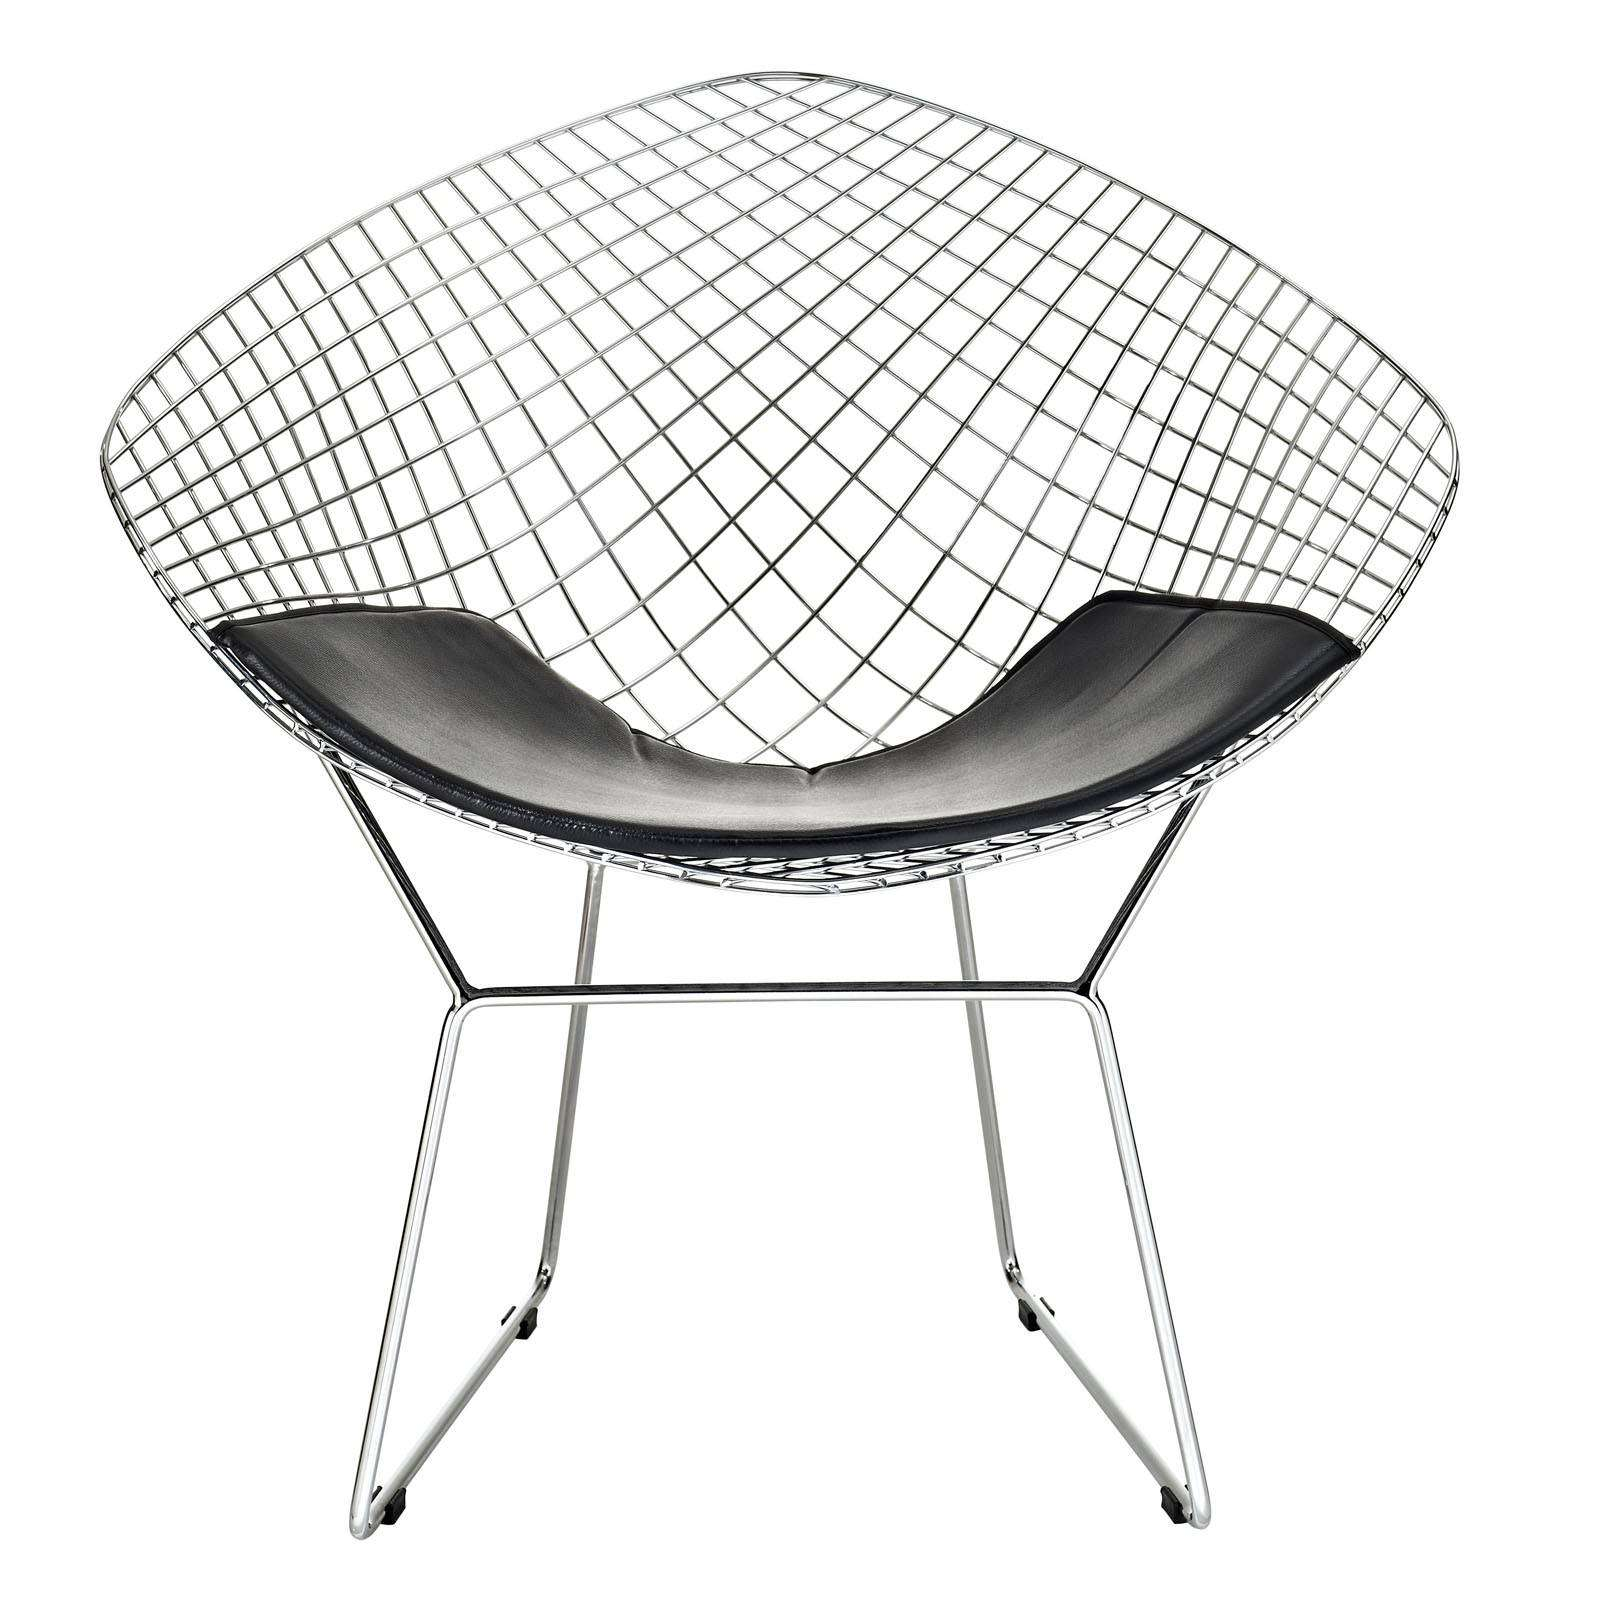 bertoia style diamond wire chair. Black Bedroom Furniture Sets. Home Design Ideas